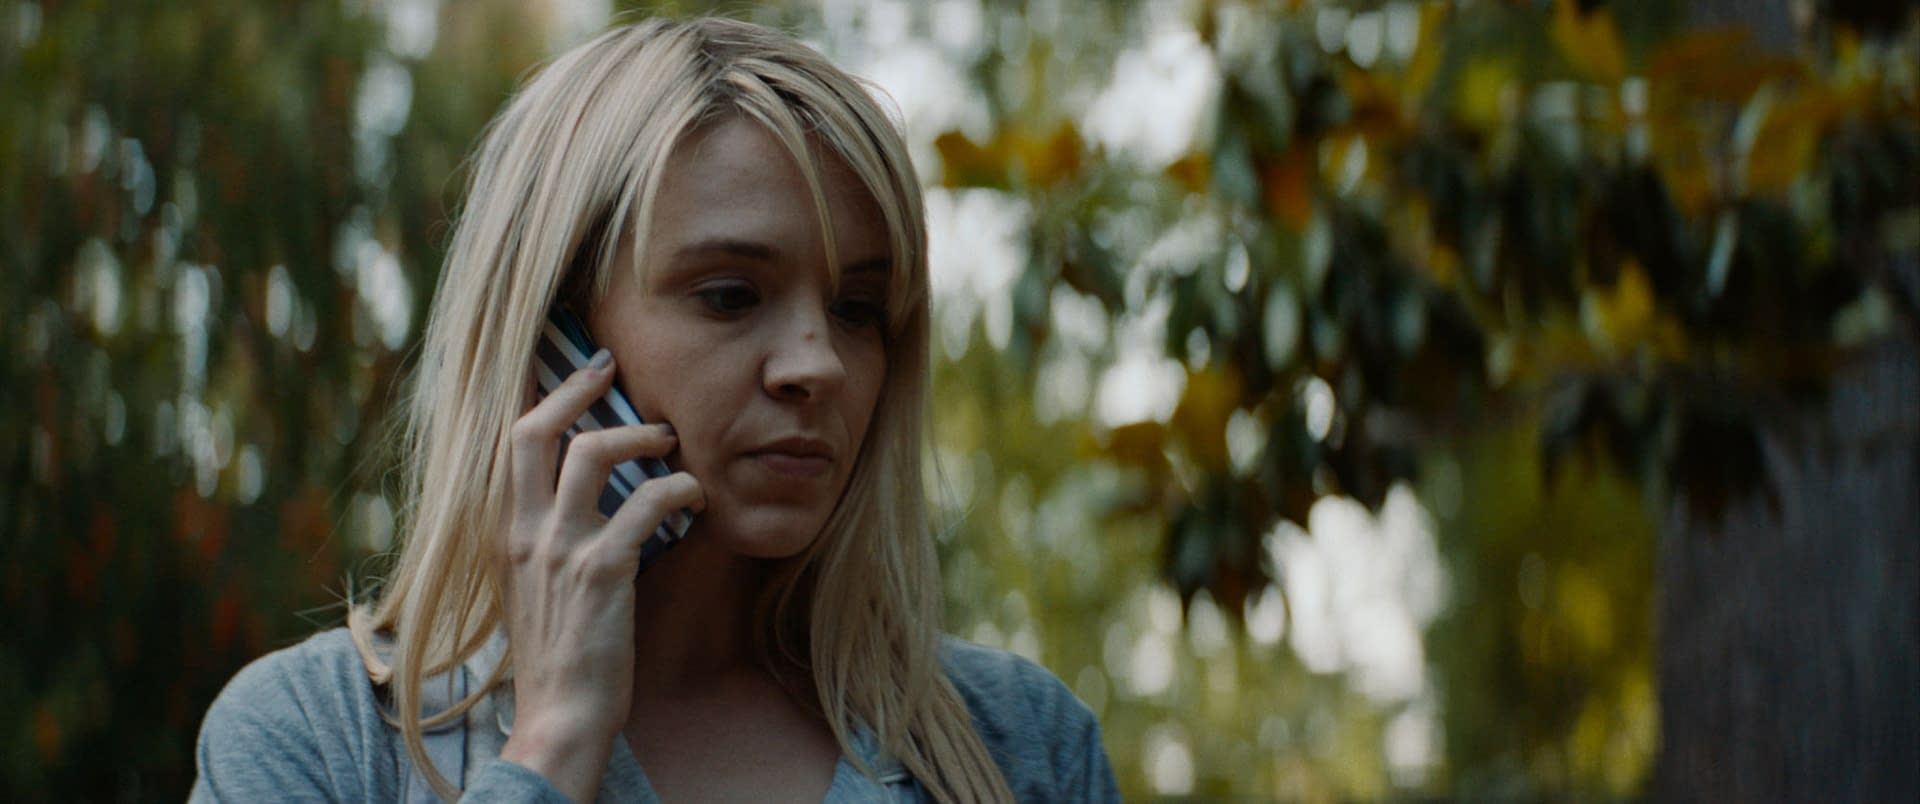 Shudder To Debut Slasher Film Lucky On March 4th, Trailer Here Now